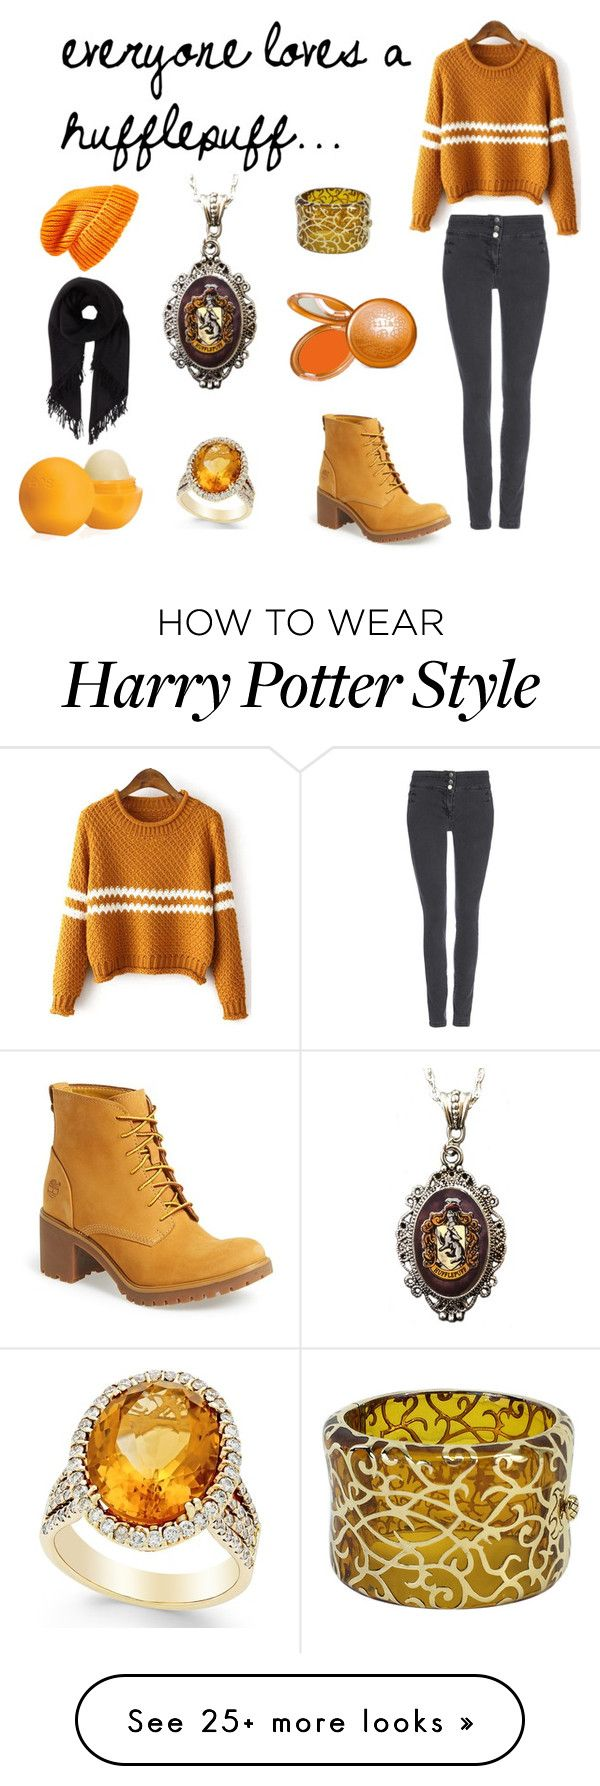 """""""Everyone Loves a Hufflepuff"""" by shannonparnell on Polyvore featuring Wallis, Timberland, Alkemie, Angélique de Paris, Topshop, Isabel Marant, Eos, Stila, harrypotter and Hufflepuff"""